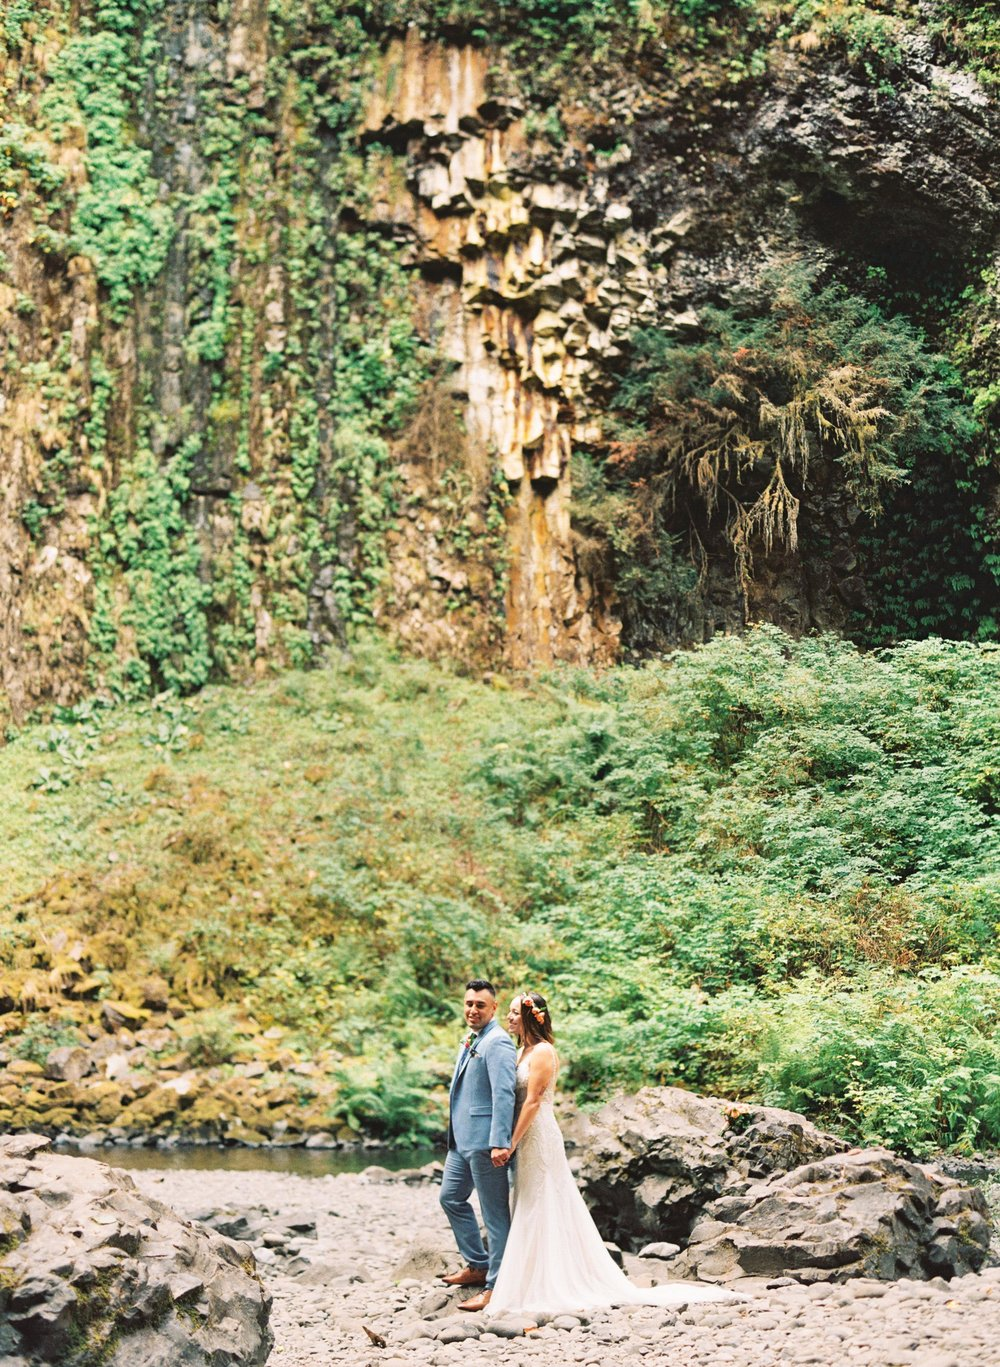 abiqua_falls_elopement_wedding_oregon_photographer_videographer_096.jpg